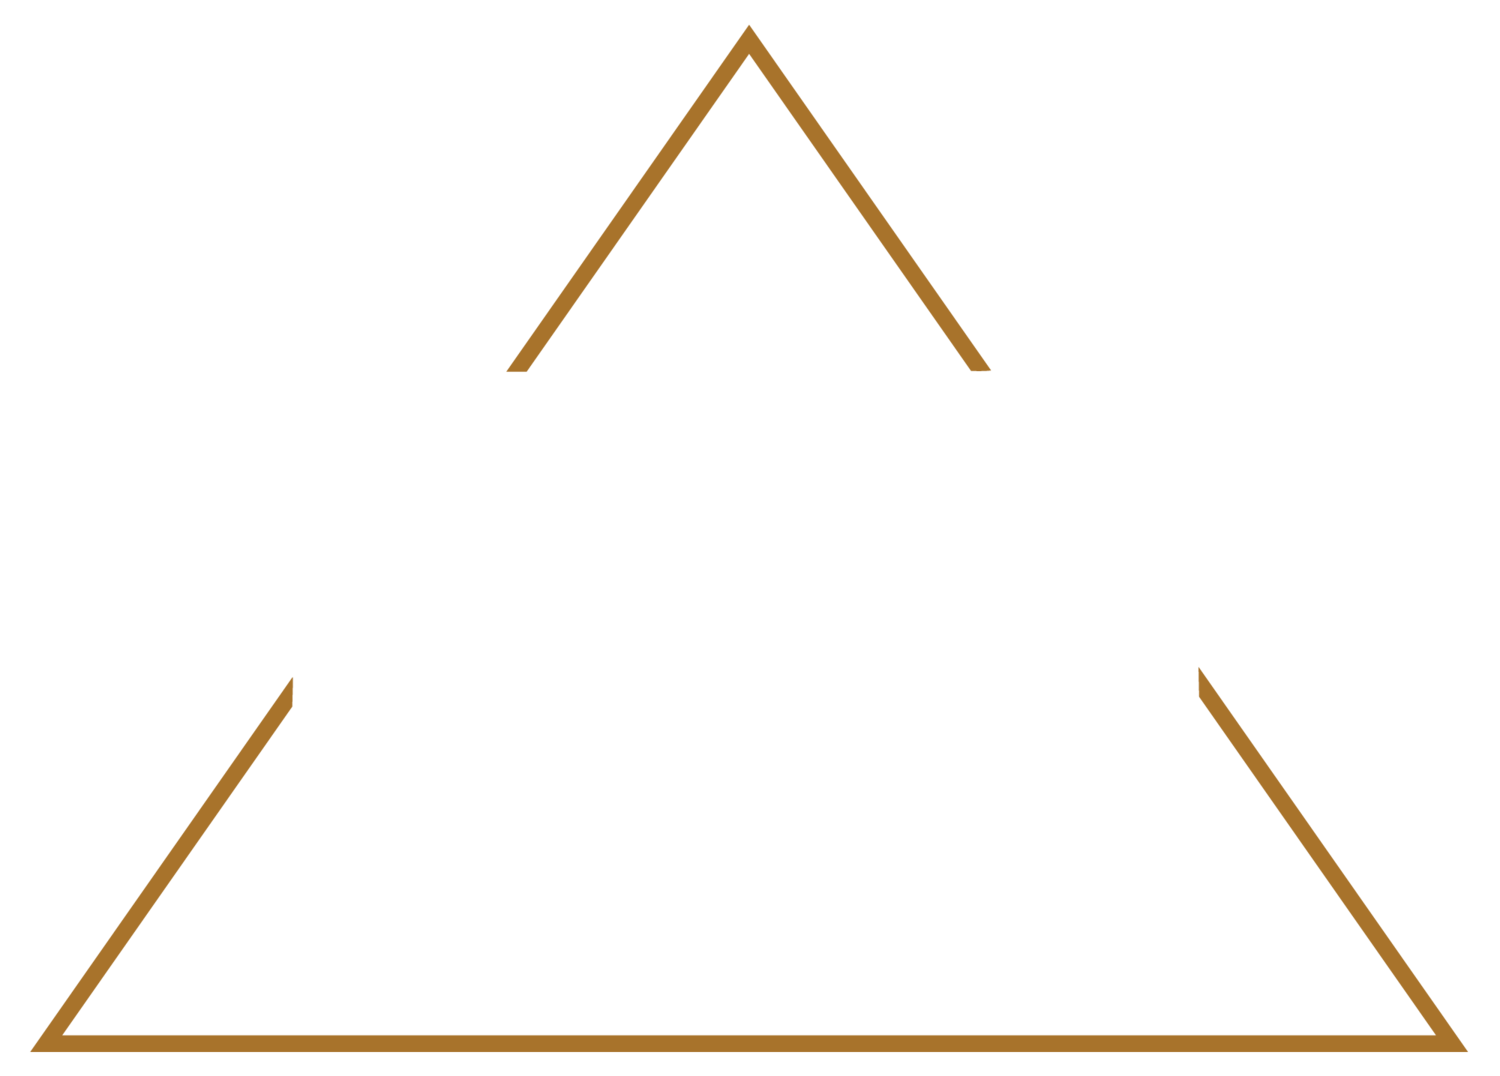 Lauren Louise Collective